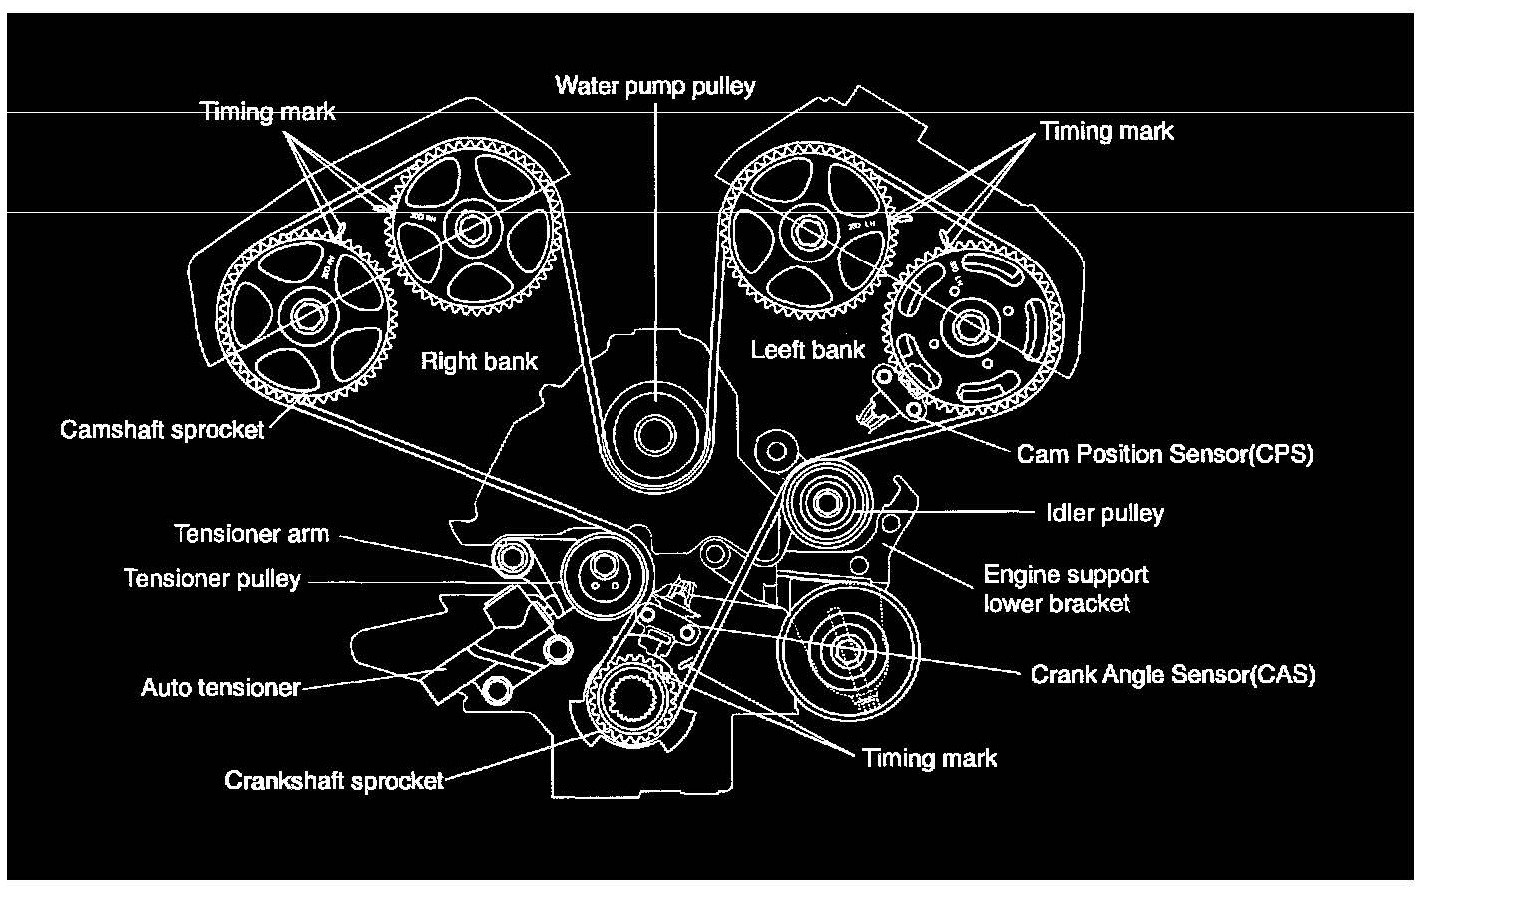 kia carnival timing belt diagram wiring in a light switch schematic 04 frontier 3 engine library sportage water pump